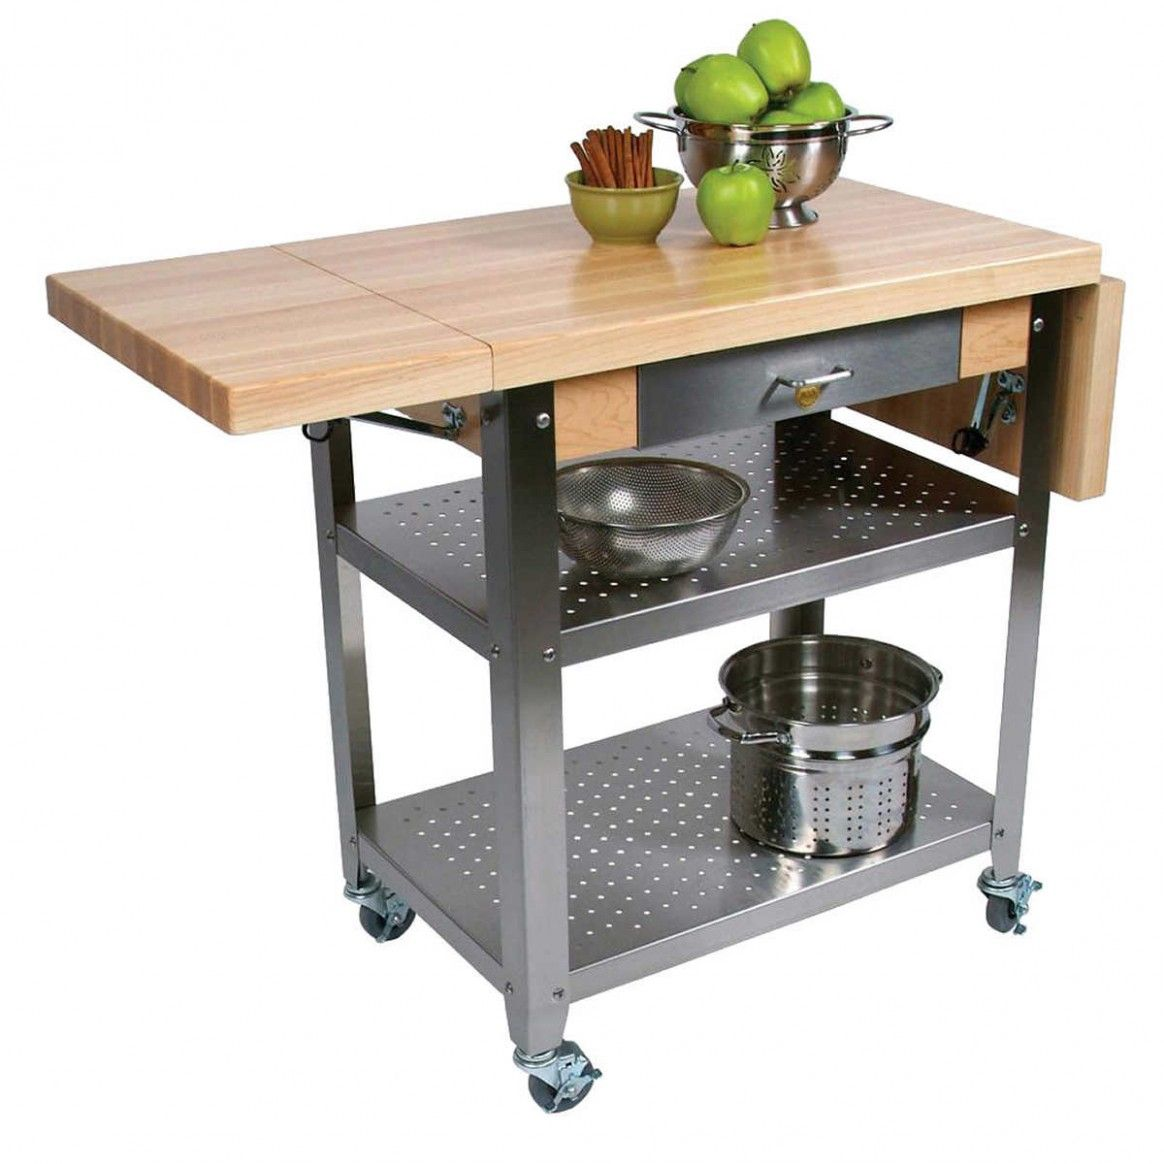 5 Common Misconceptions About Elliptical C-Table Kitchen Island With Butcher Block Top | Small Kitchen Storage, Small Kitchen Storage Solutions, Americana Kitchen